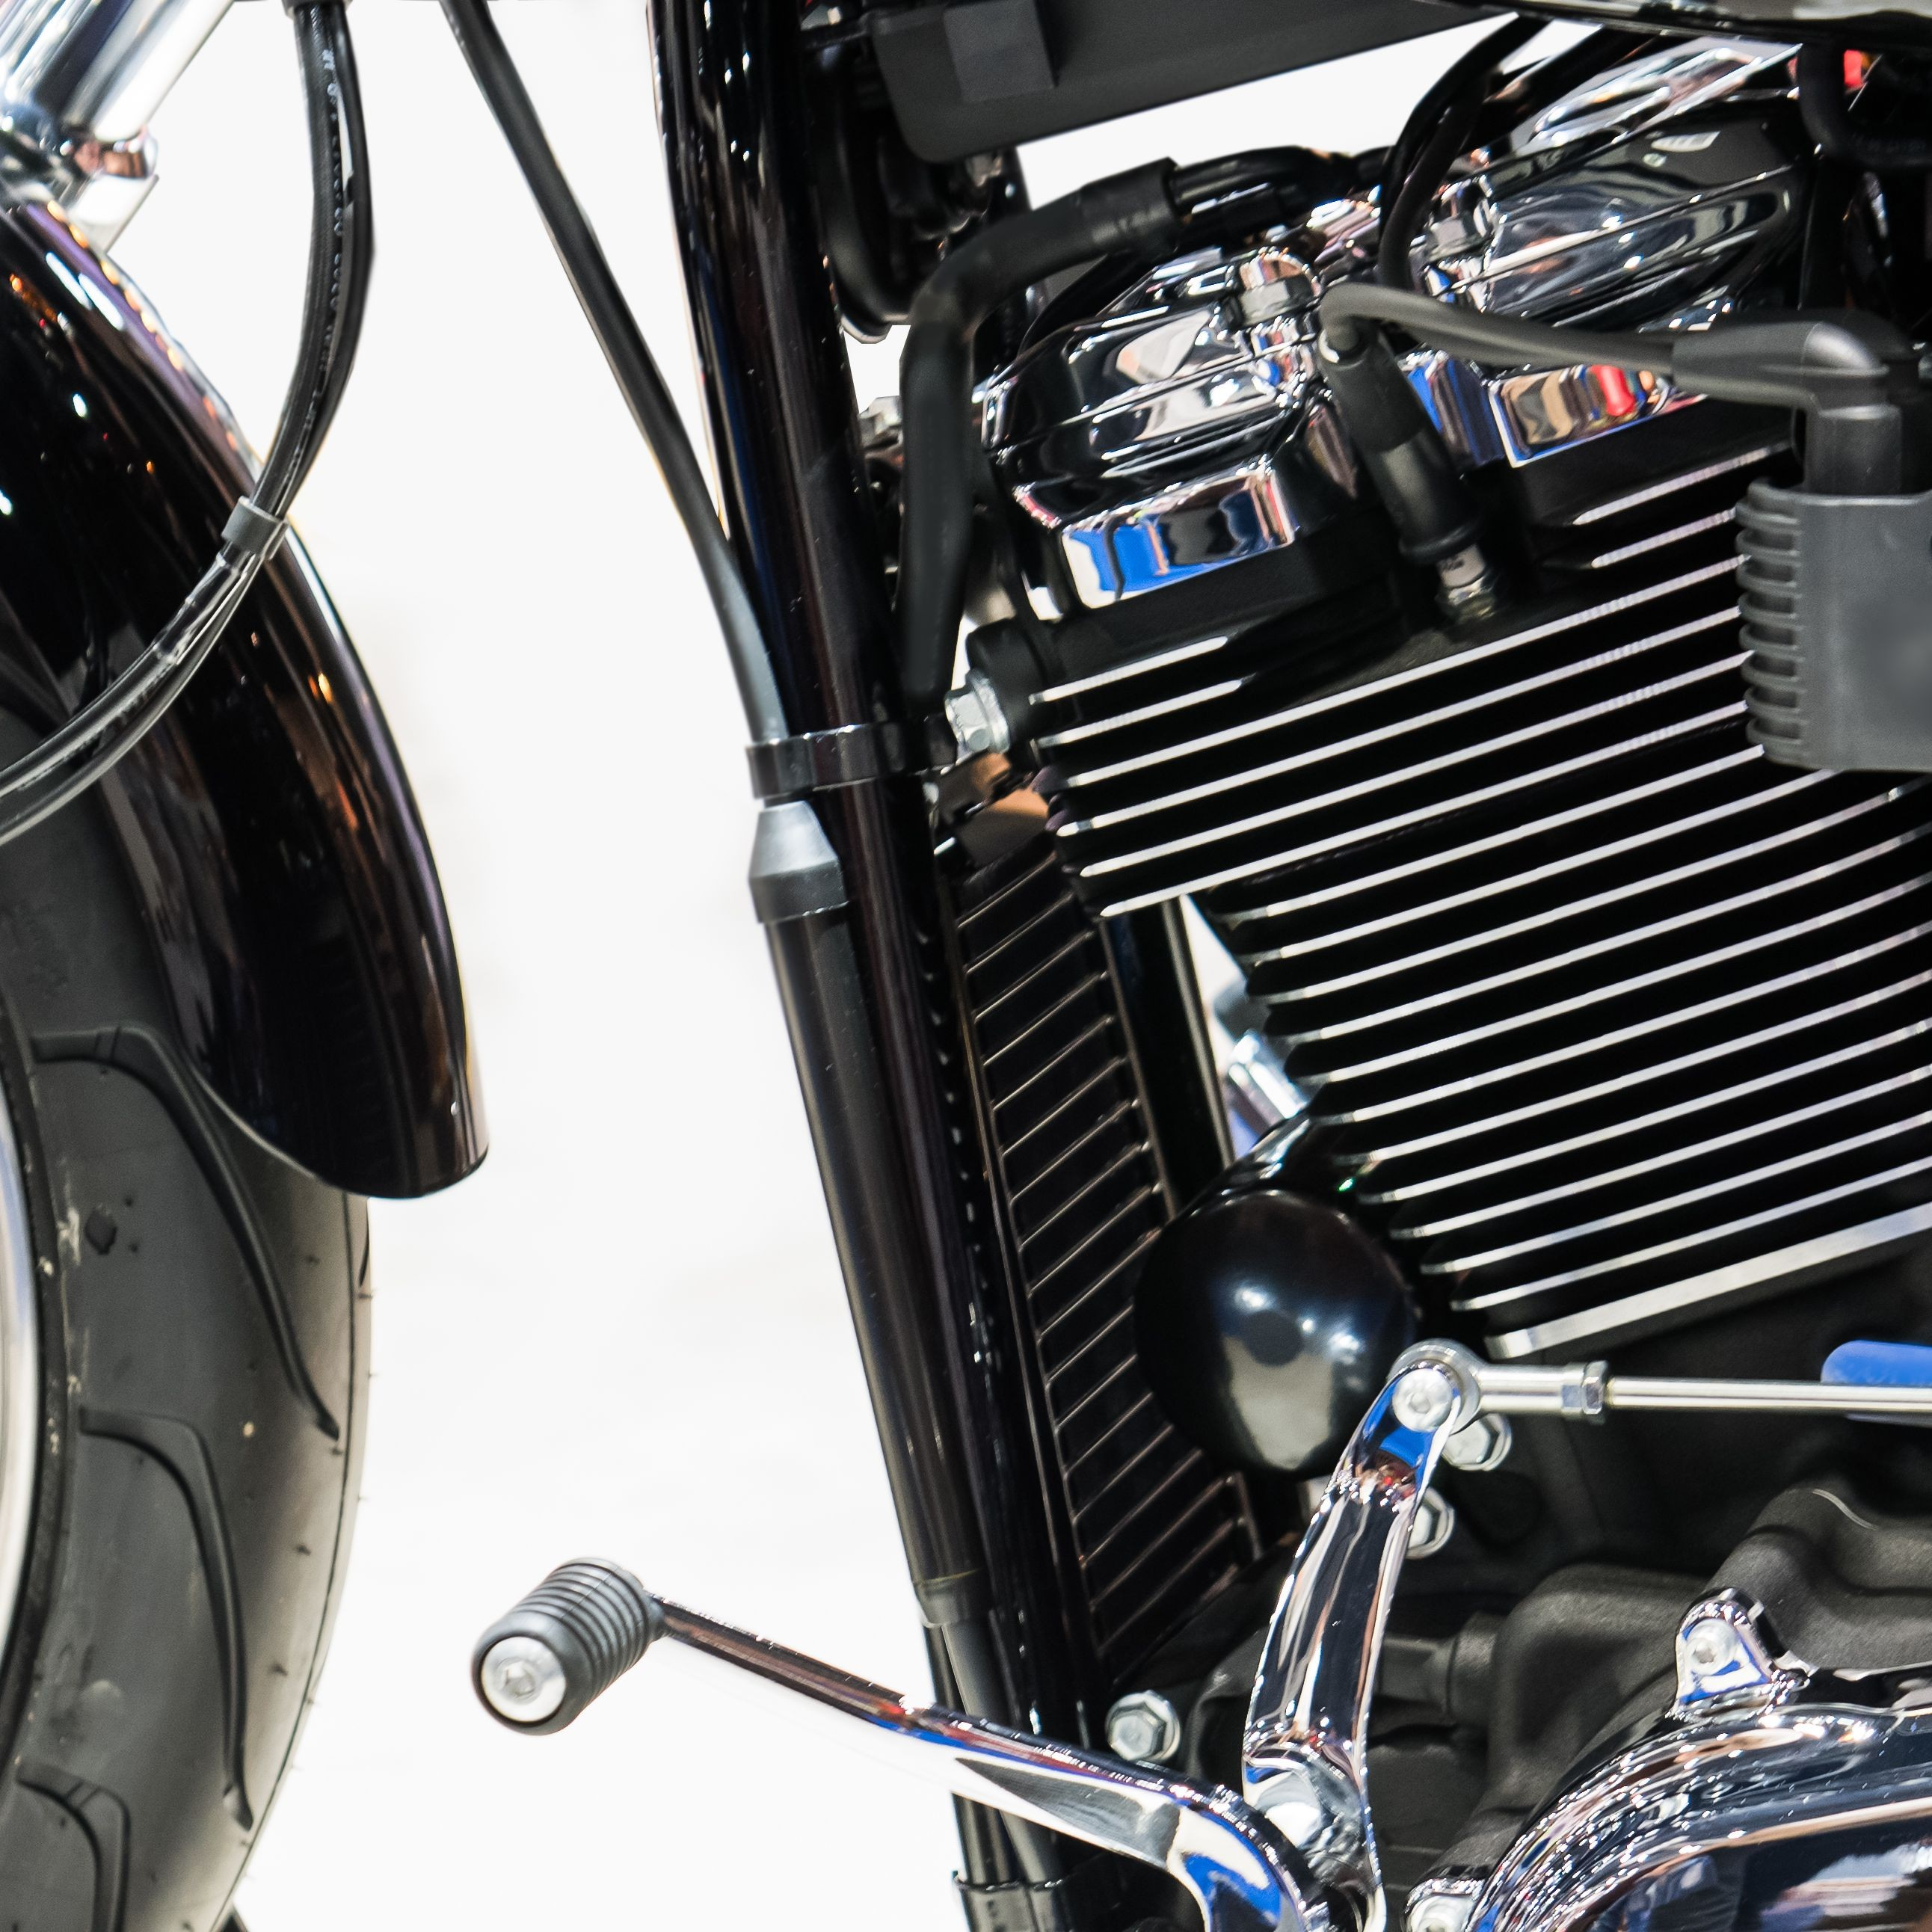 How Bike Engine Works with Diagram Motorcycle Wiring Of How Bike Engine Works with Diagram